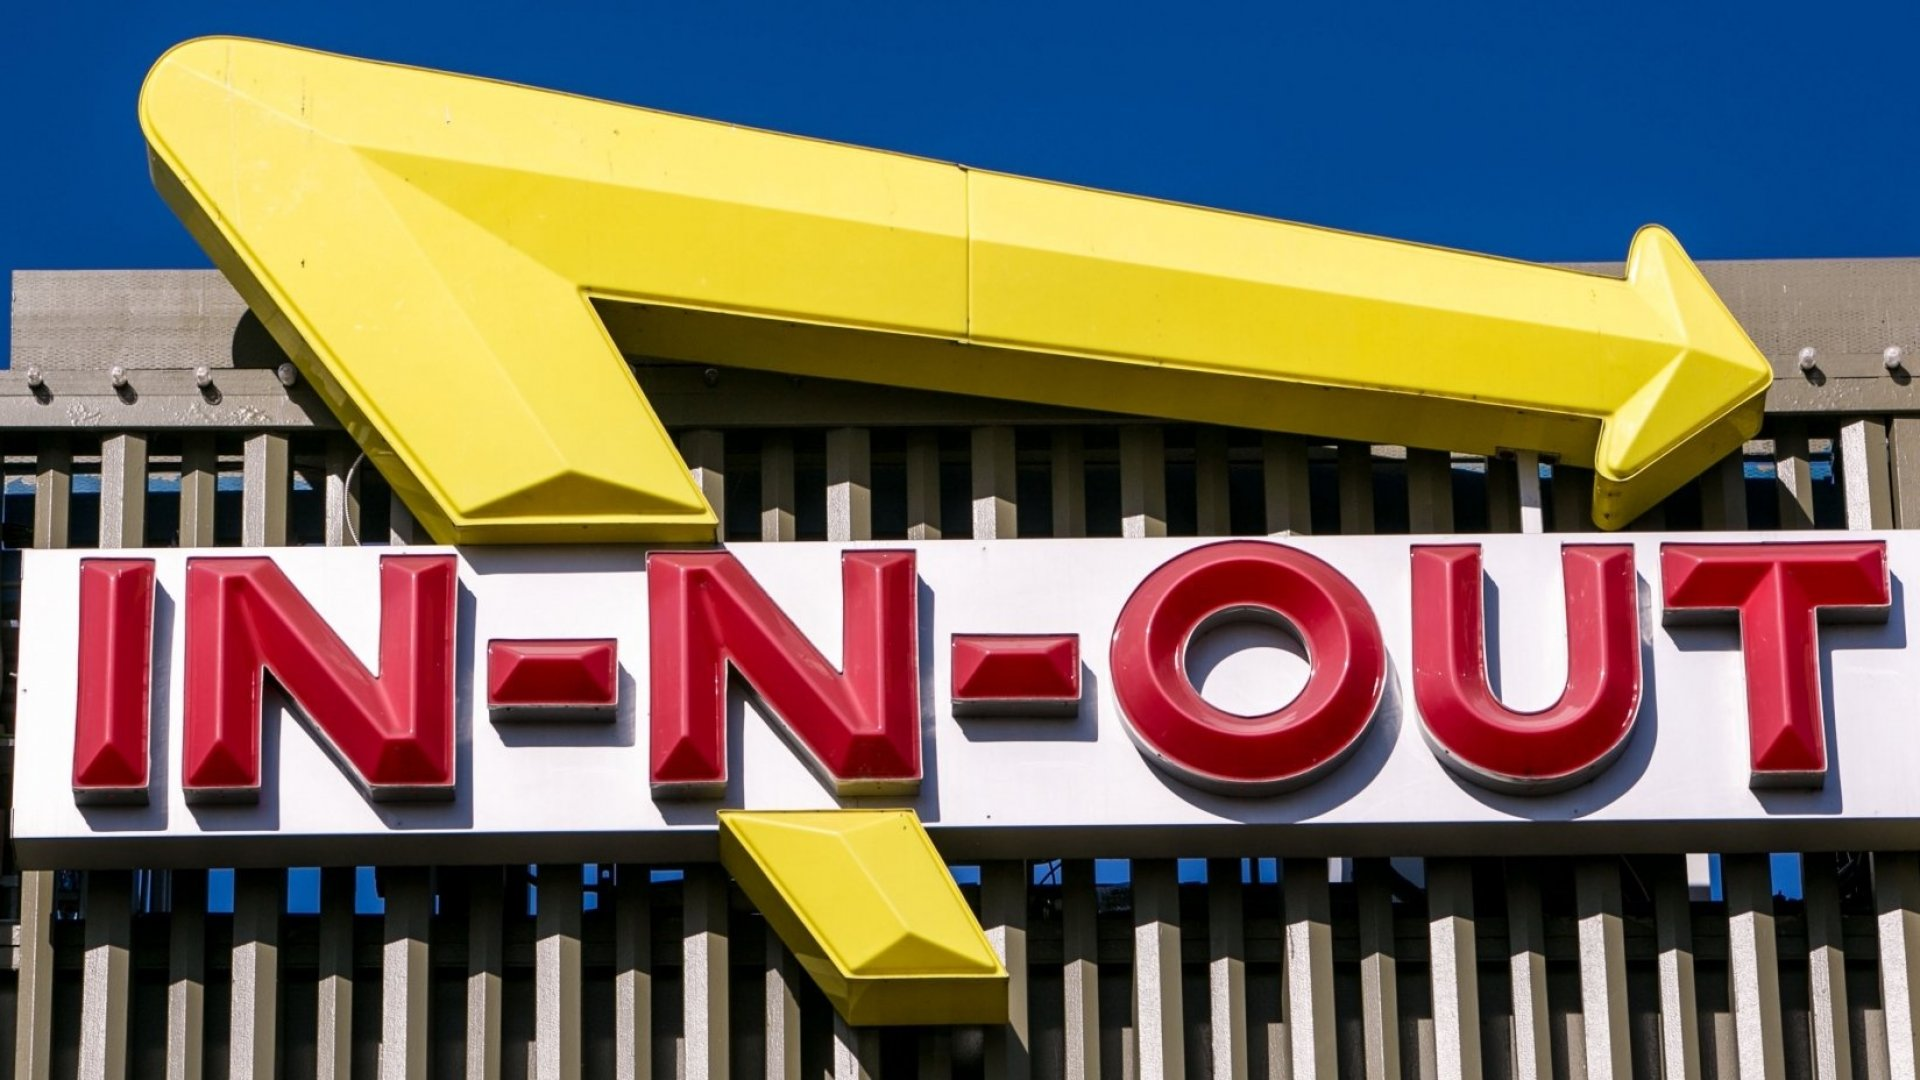 Fake CEO Disrupts In-N-Out Burger and the Company Files a Lawsuit